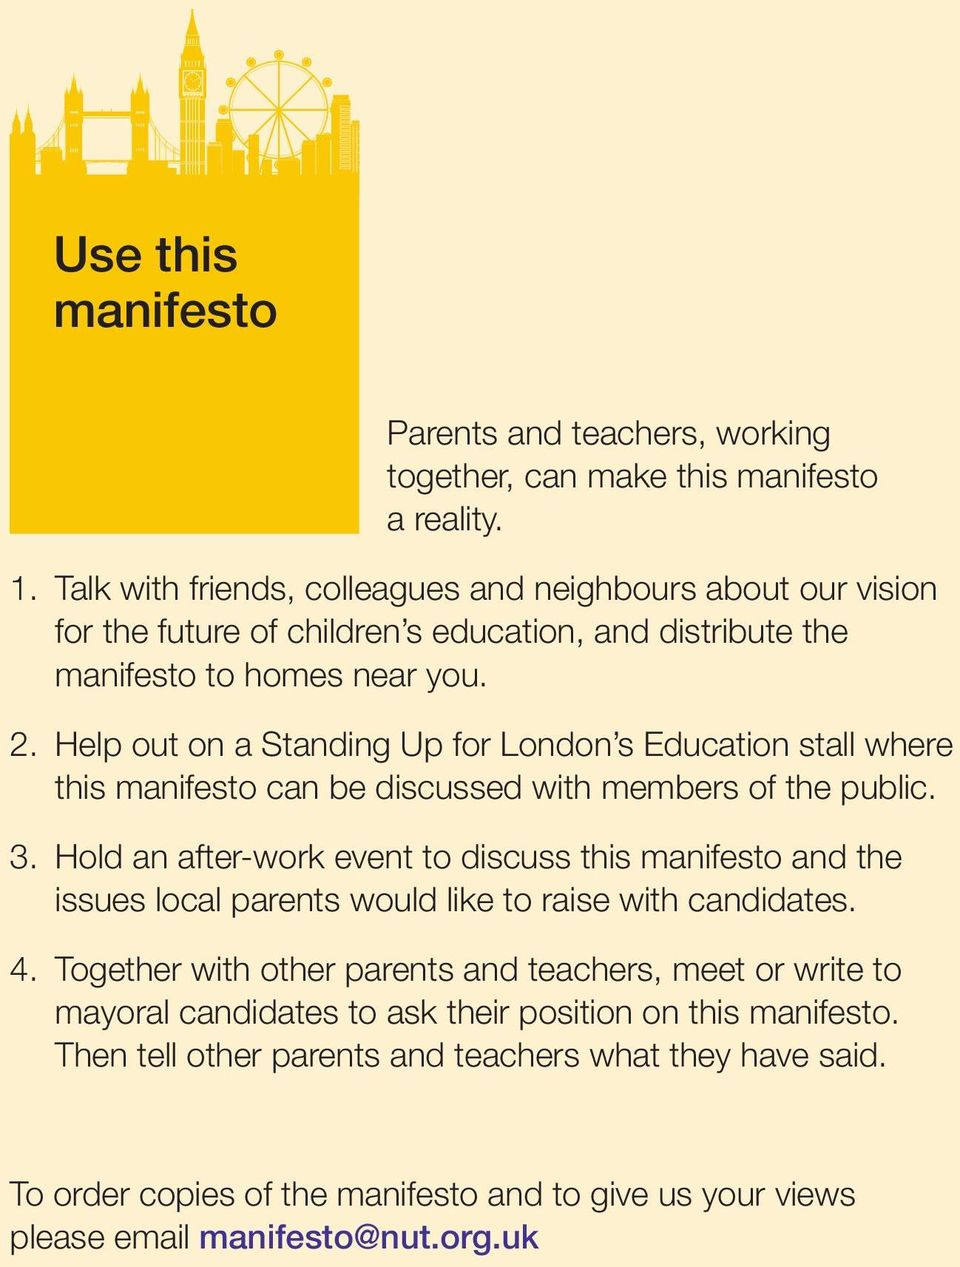 Help out on a Standing Up for London s Education stall where this manifesto can be discussed with members of the public. 3.